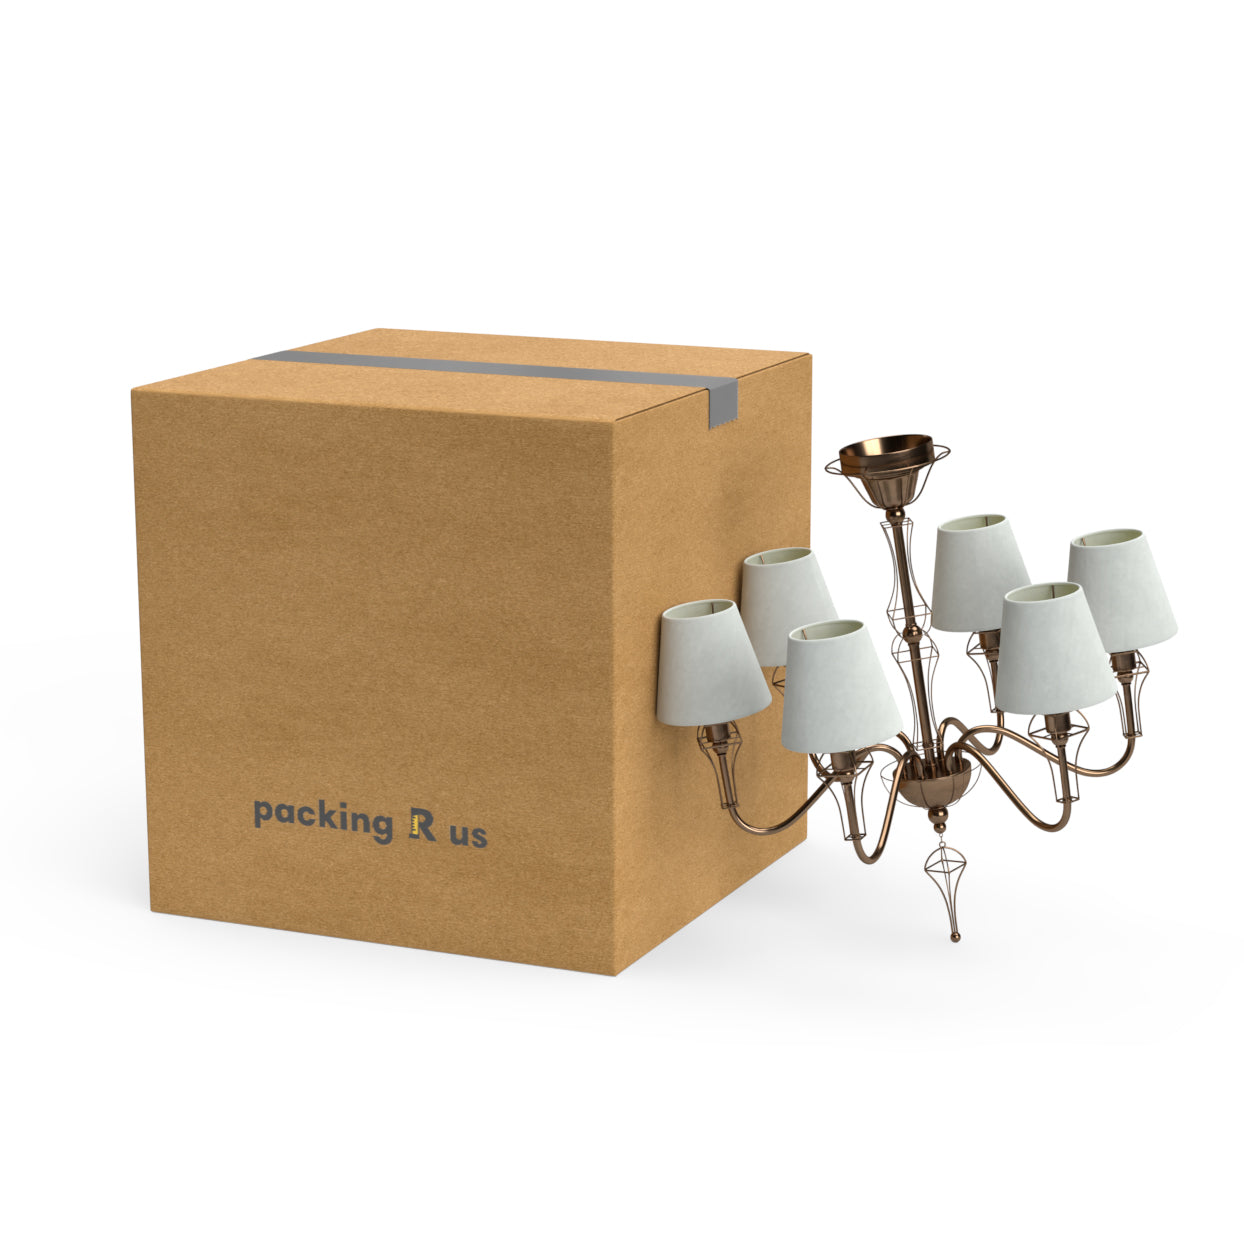 e214c0b64f94 Moving Boxes | Speciality Boxes | Packing Supplies | Packing R Us